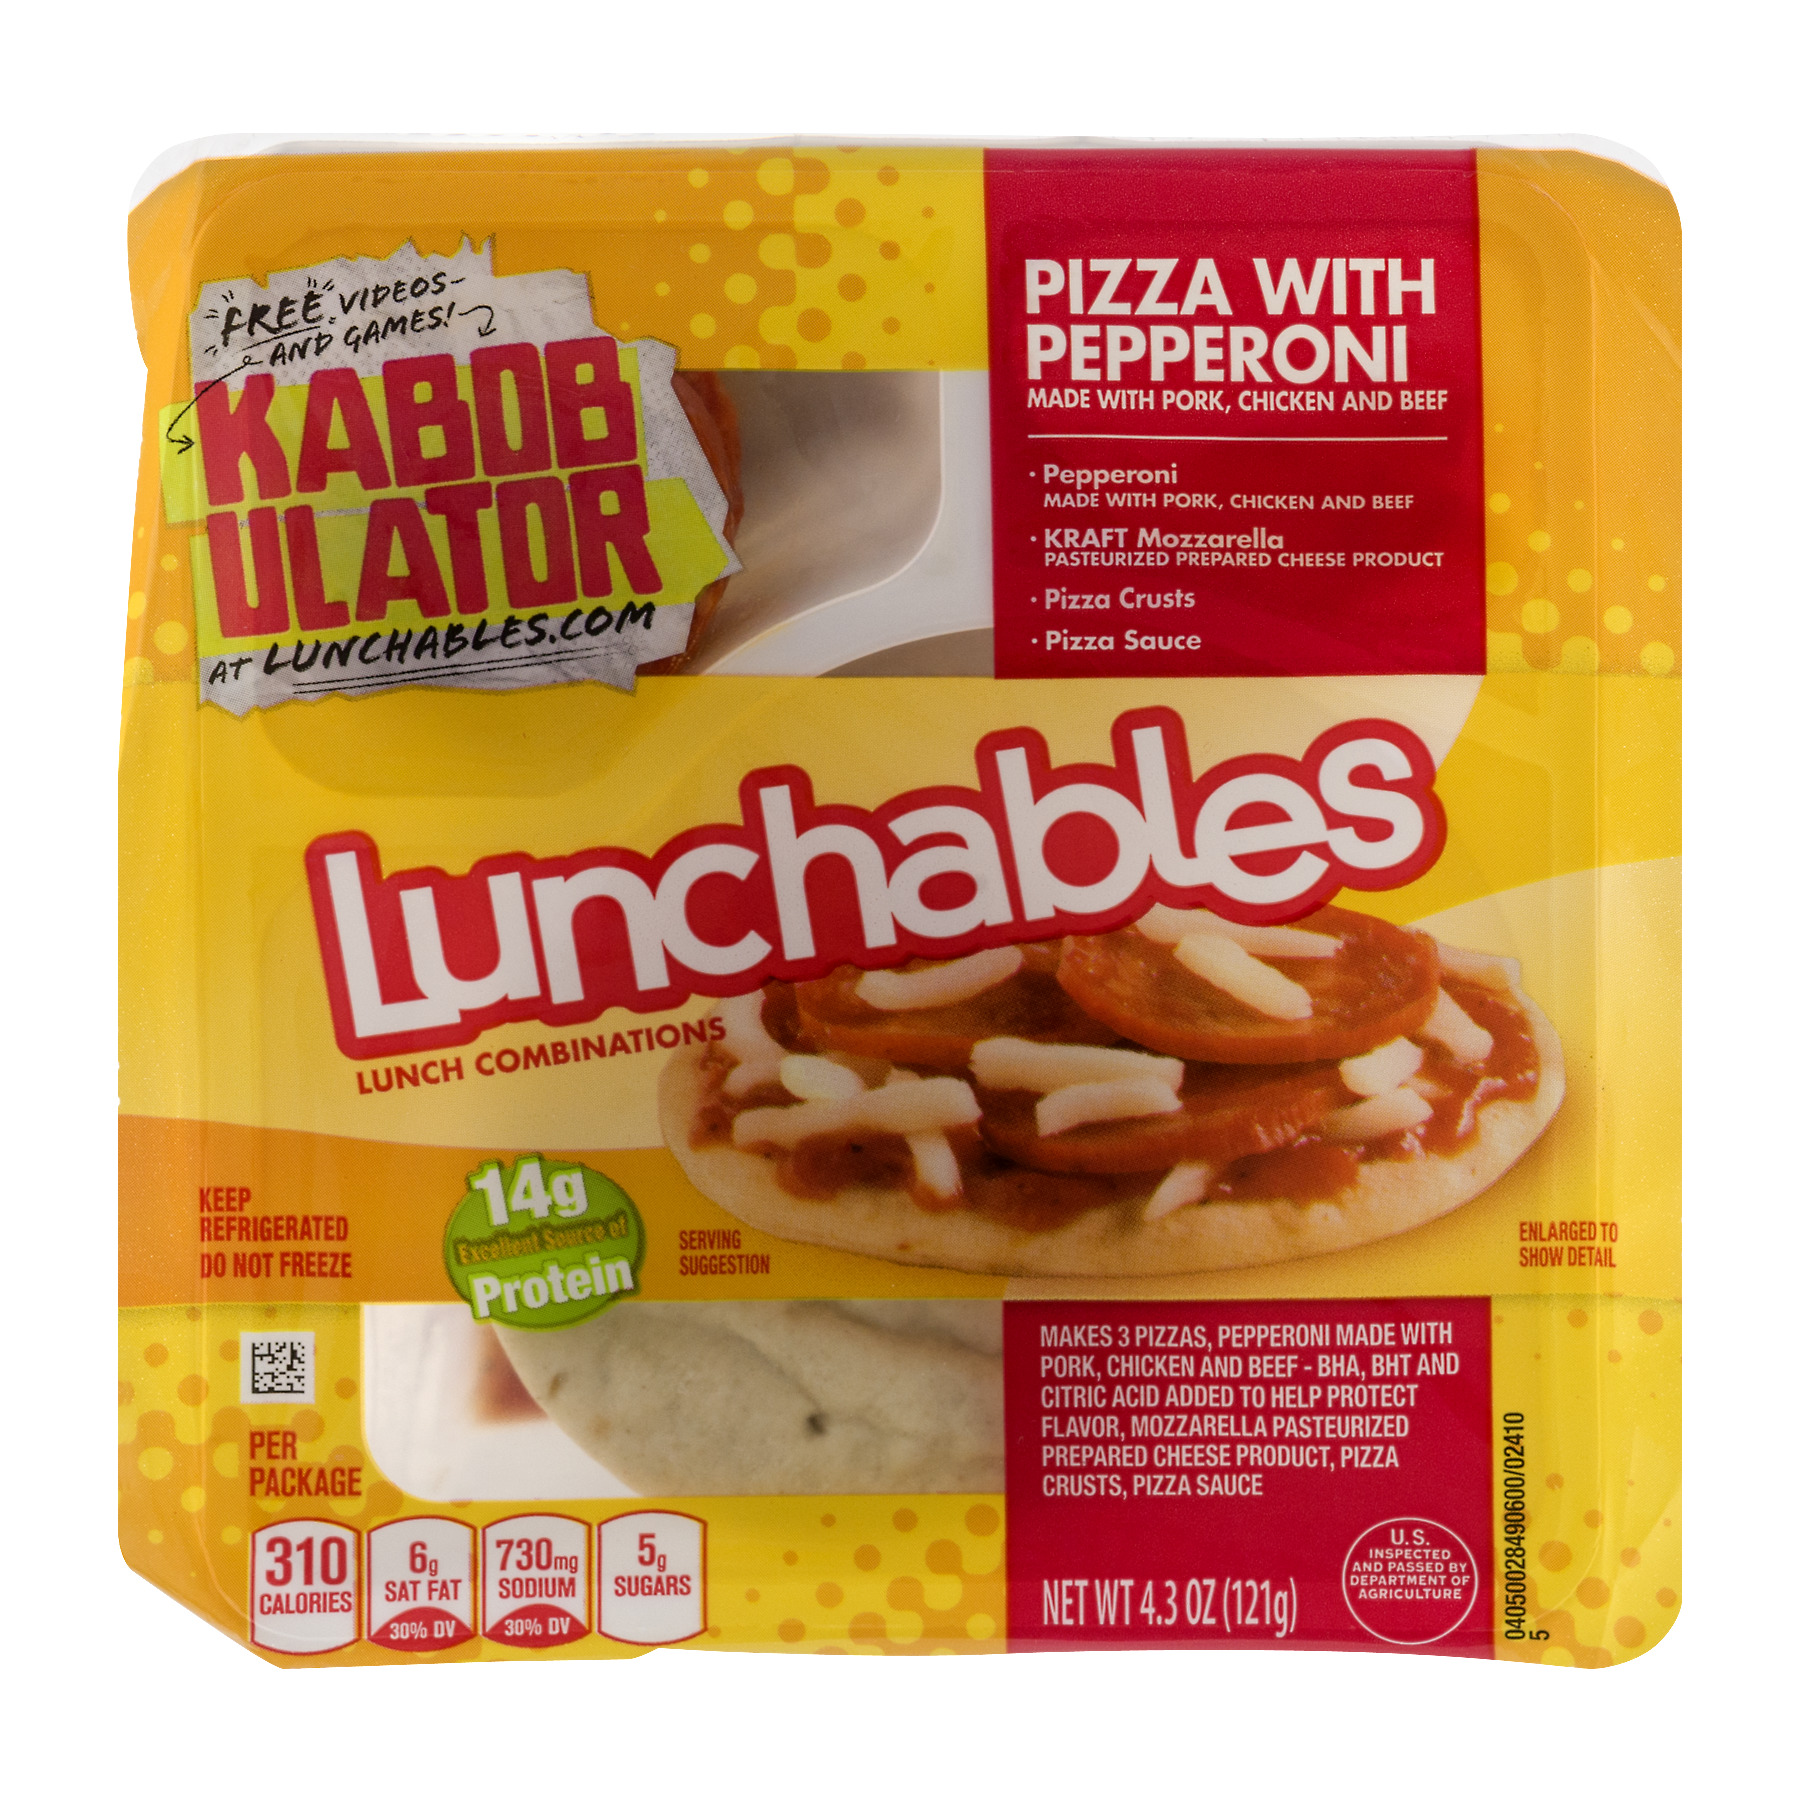 Lunchables Lunch Combinations Pizza with Pepperoni, 4.3 OZ